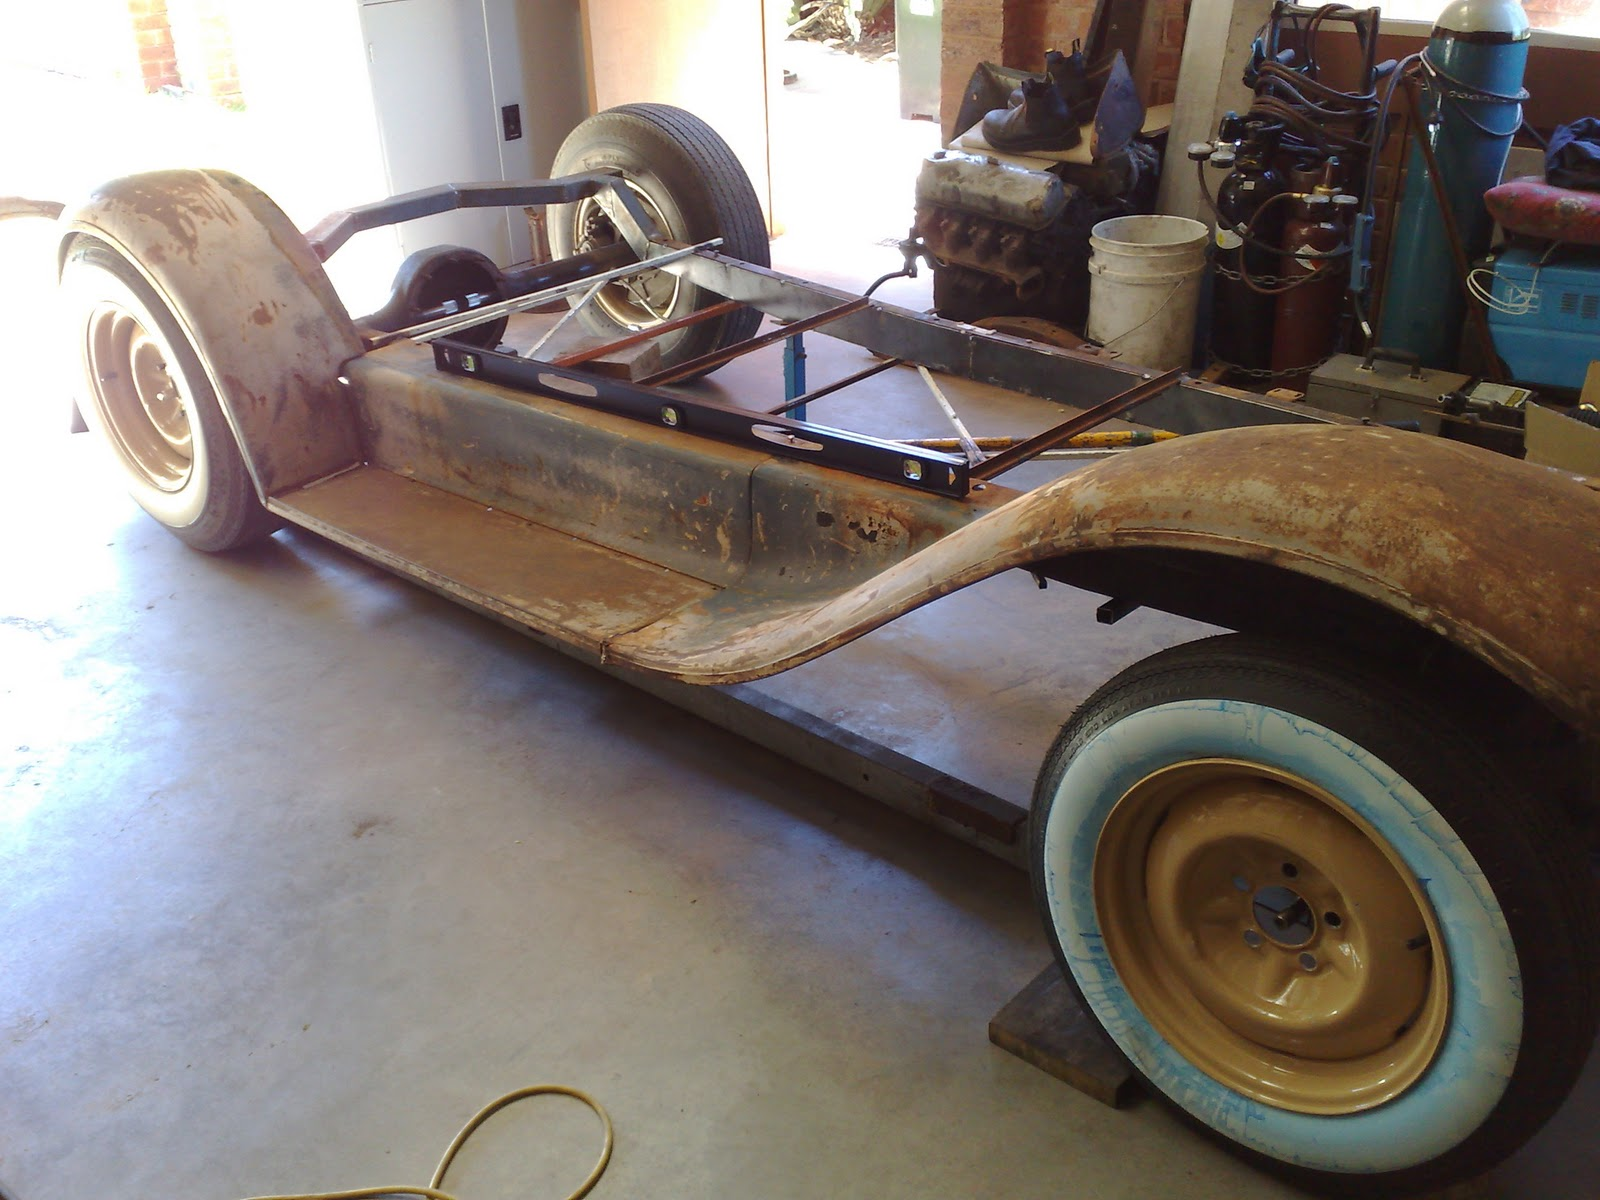 How To Measure Wheel Base >> 1930 Ford Model A Coupe Build Up Test Measuring Wheel Base